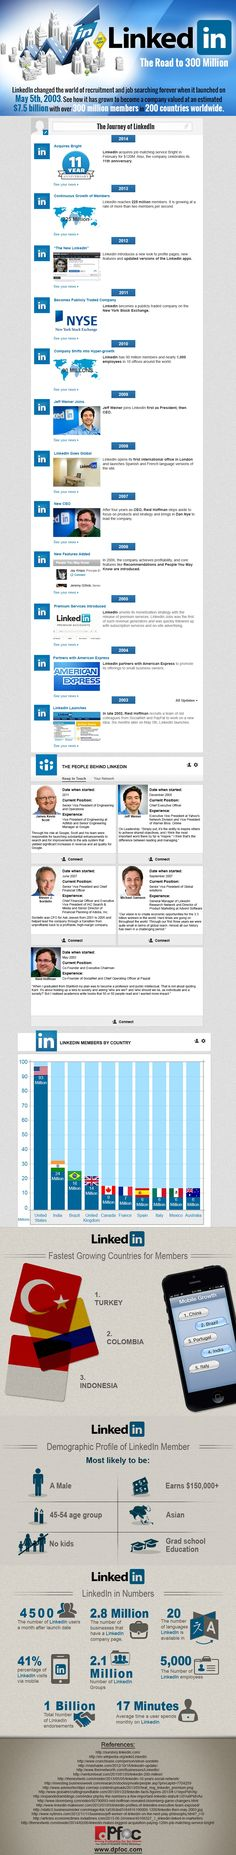 The Top 10 #LinkedIn Facts and Figures in 2014 You Need To Know - Jeffbullas's Blog